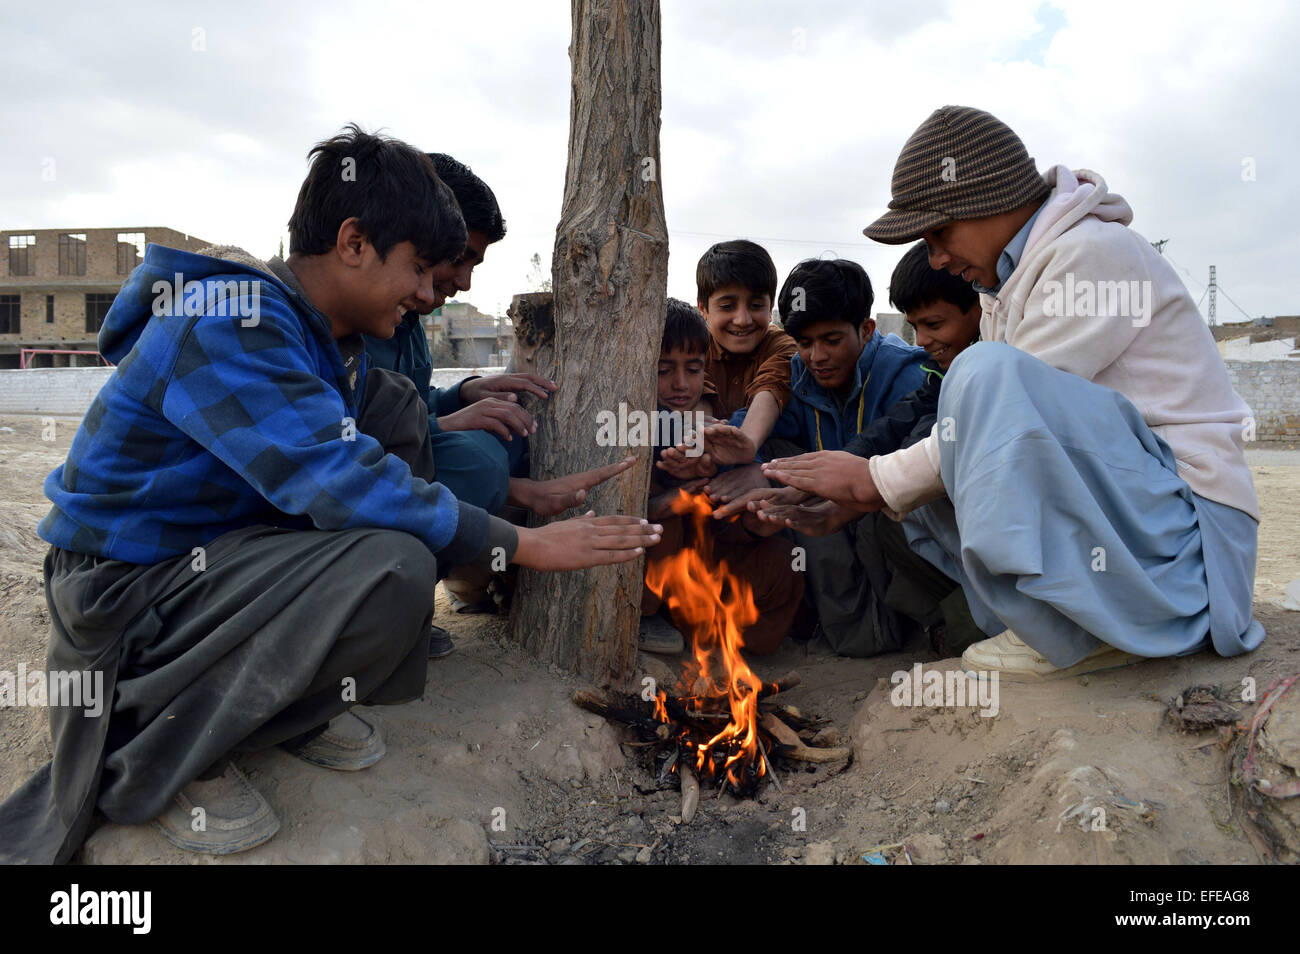 Quetta. 2nd Feb, 2015. Children sit around fire to warm themselves in southwest Pakistan's Quetta, Feb. 2, 2015. - Stock Image